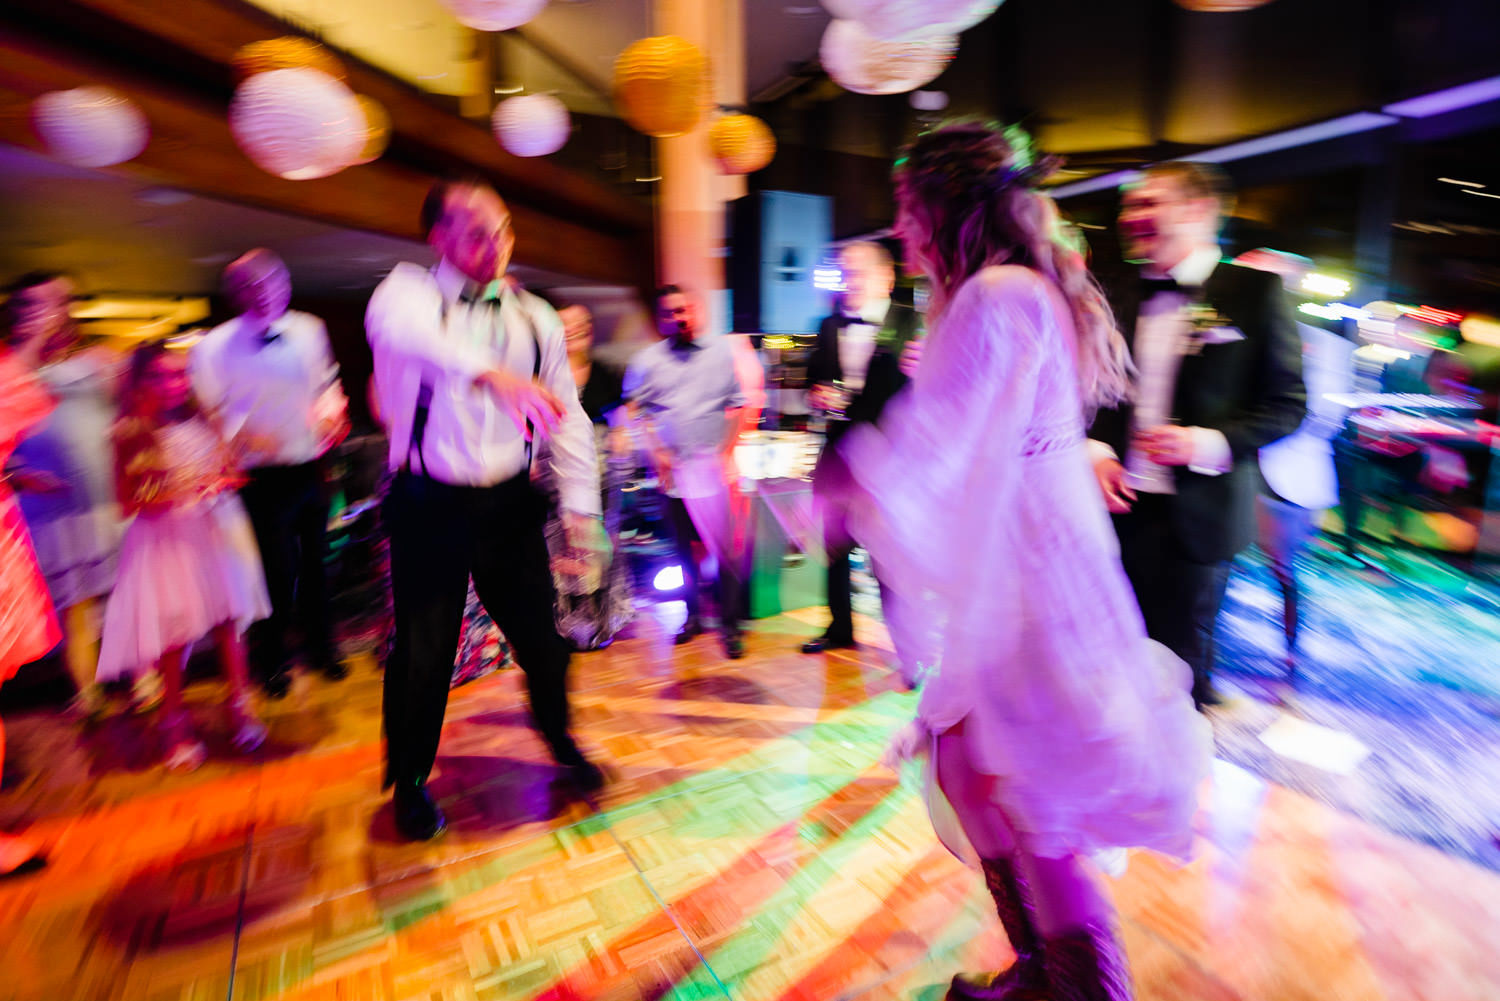 Wedding at Snowbird Cliff Lodge dancing with long exposure photo